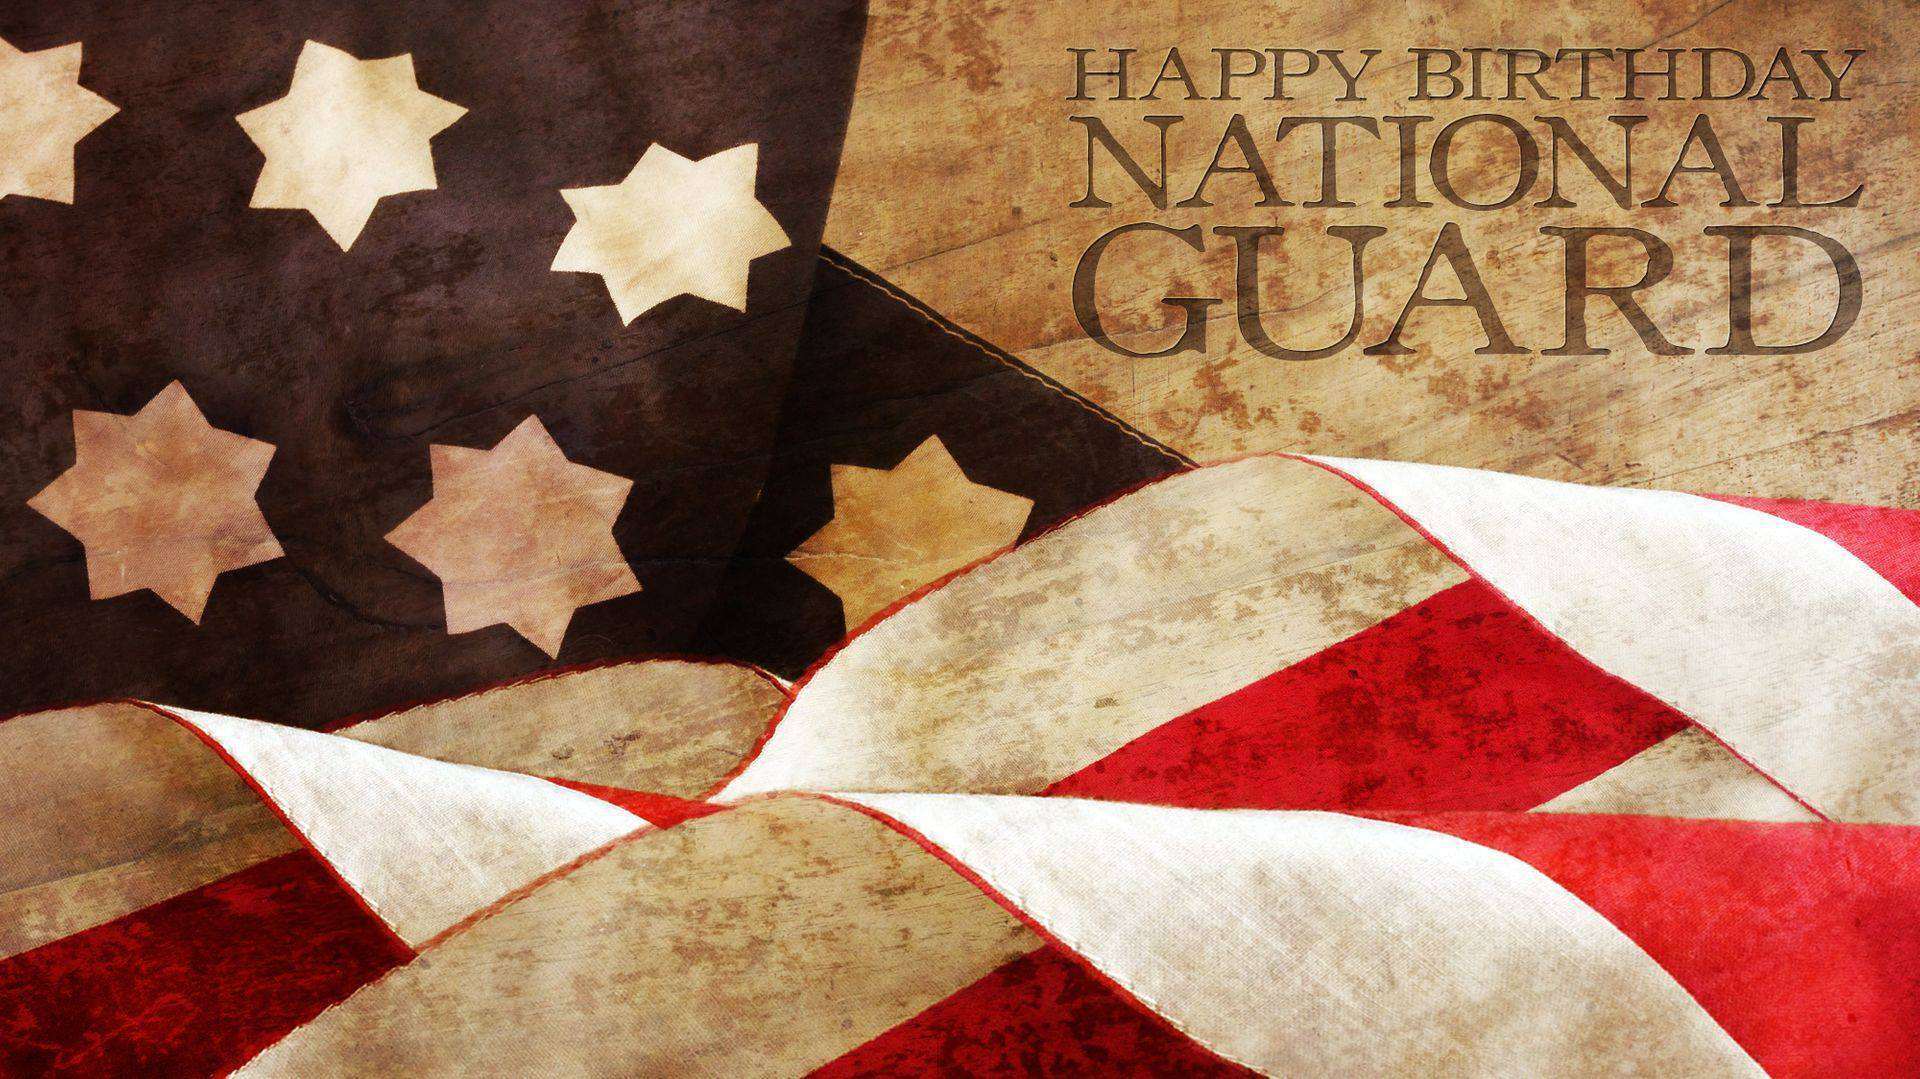 U.S. National Guard Birthday Wishes Beautiful Image